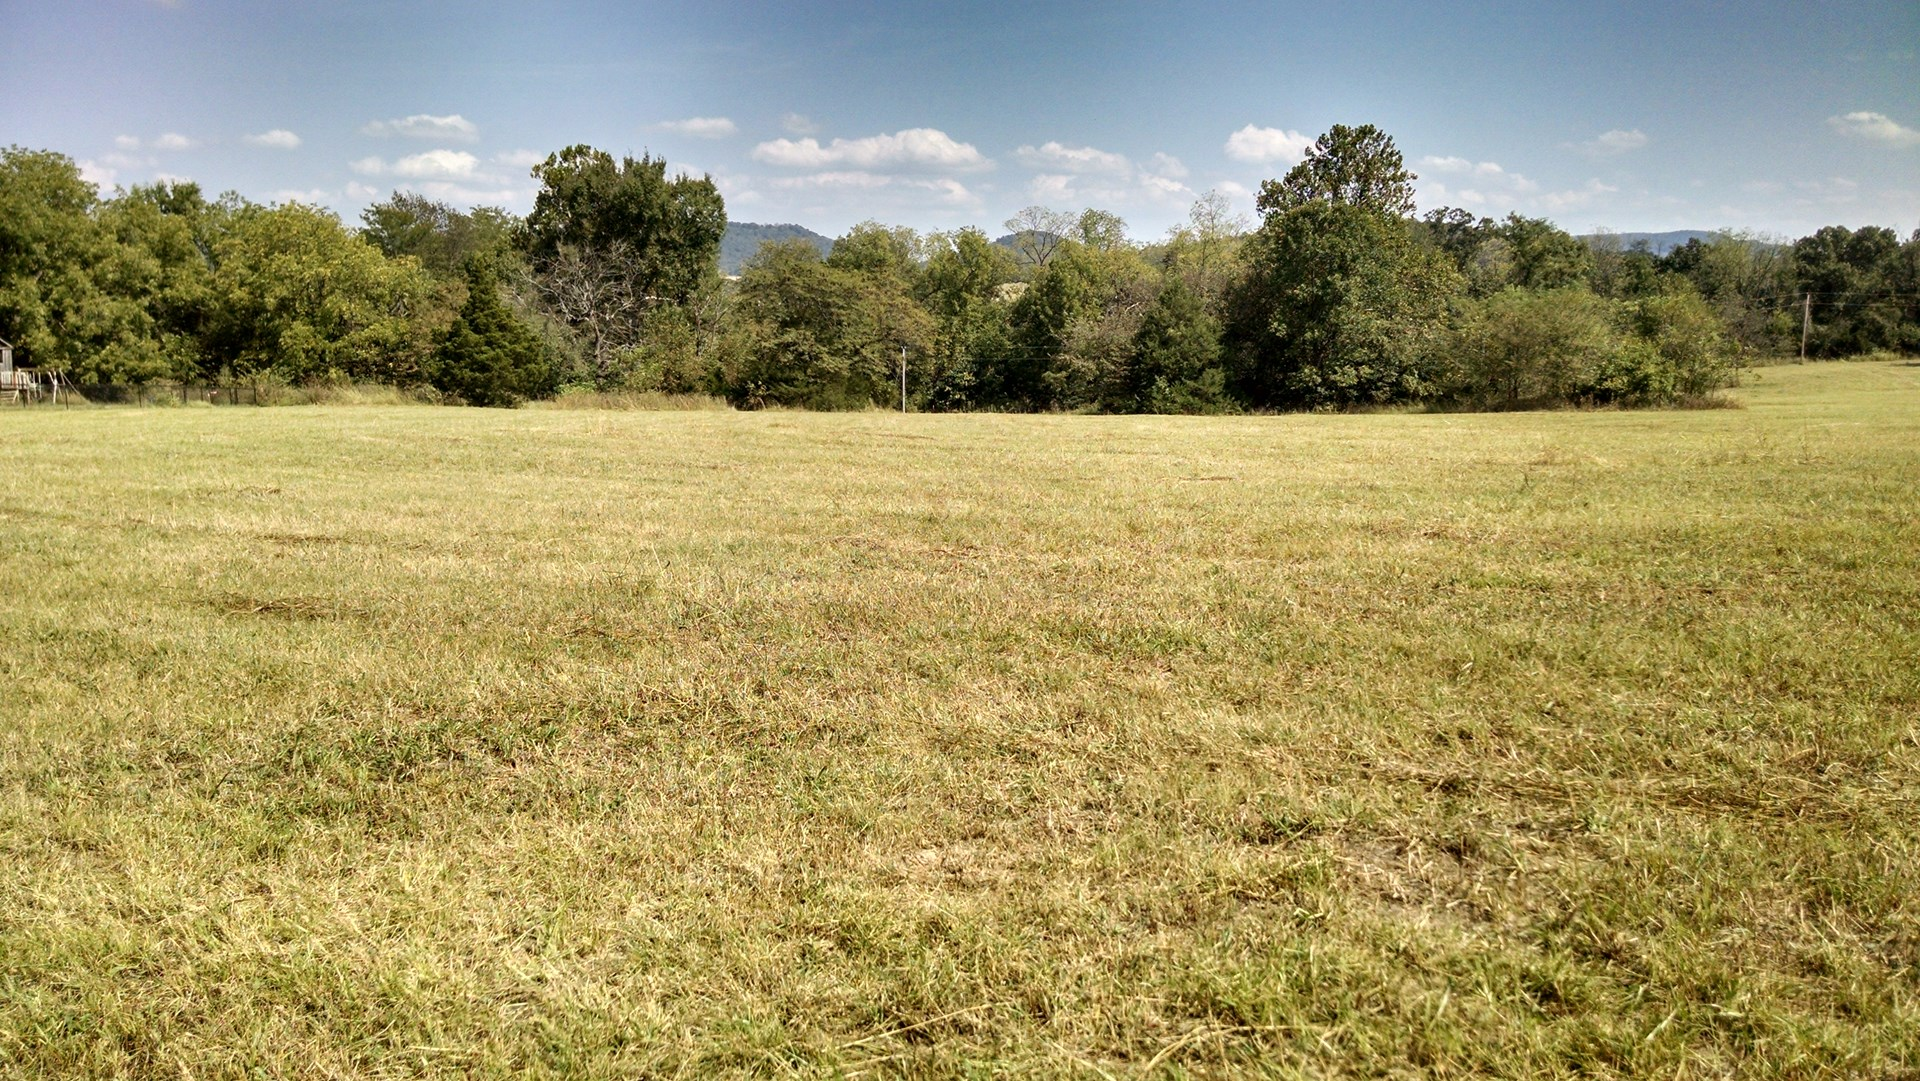 Residential land for sale in Berryville for sale